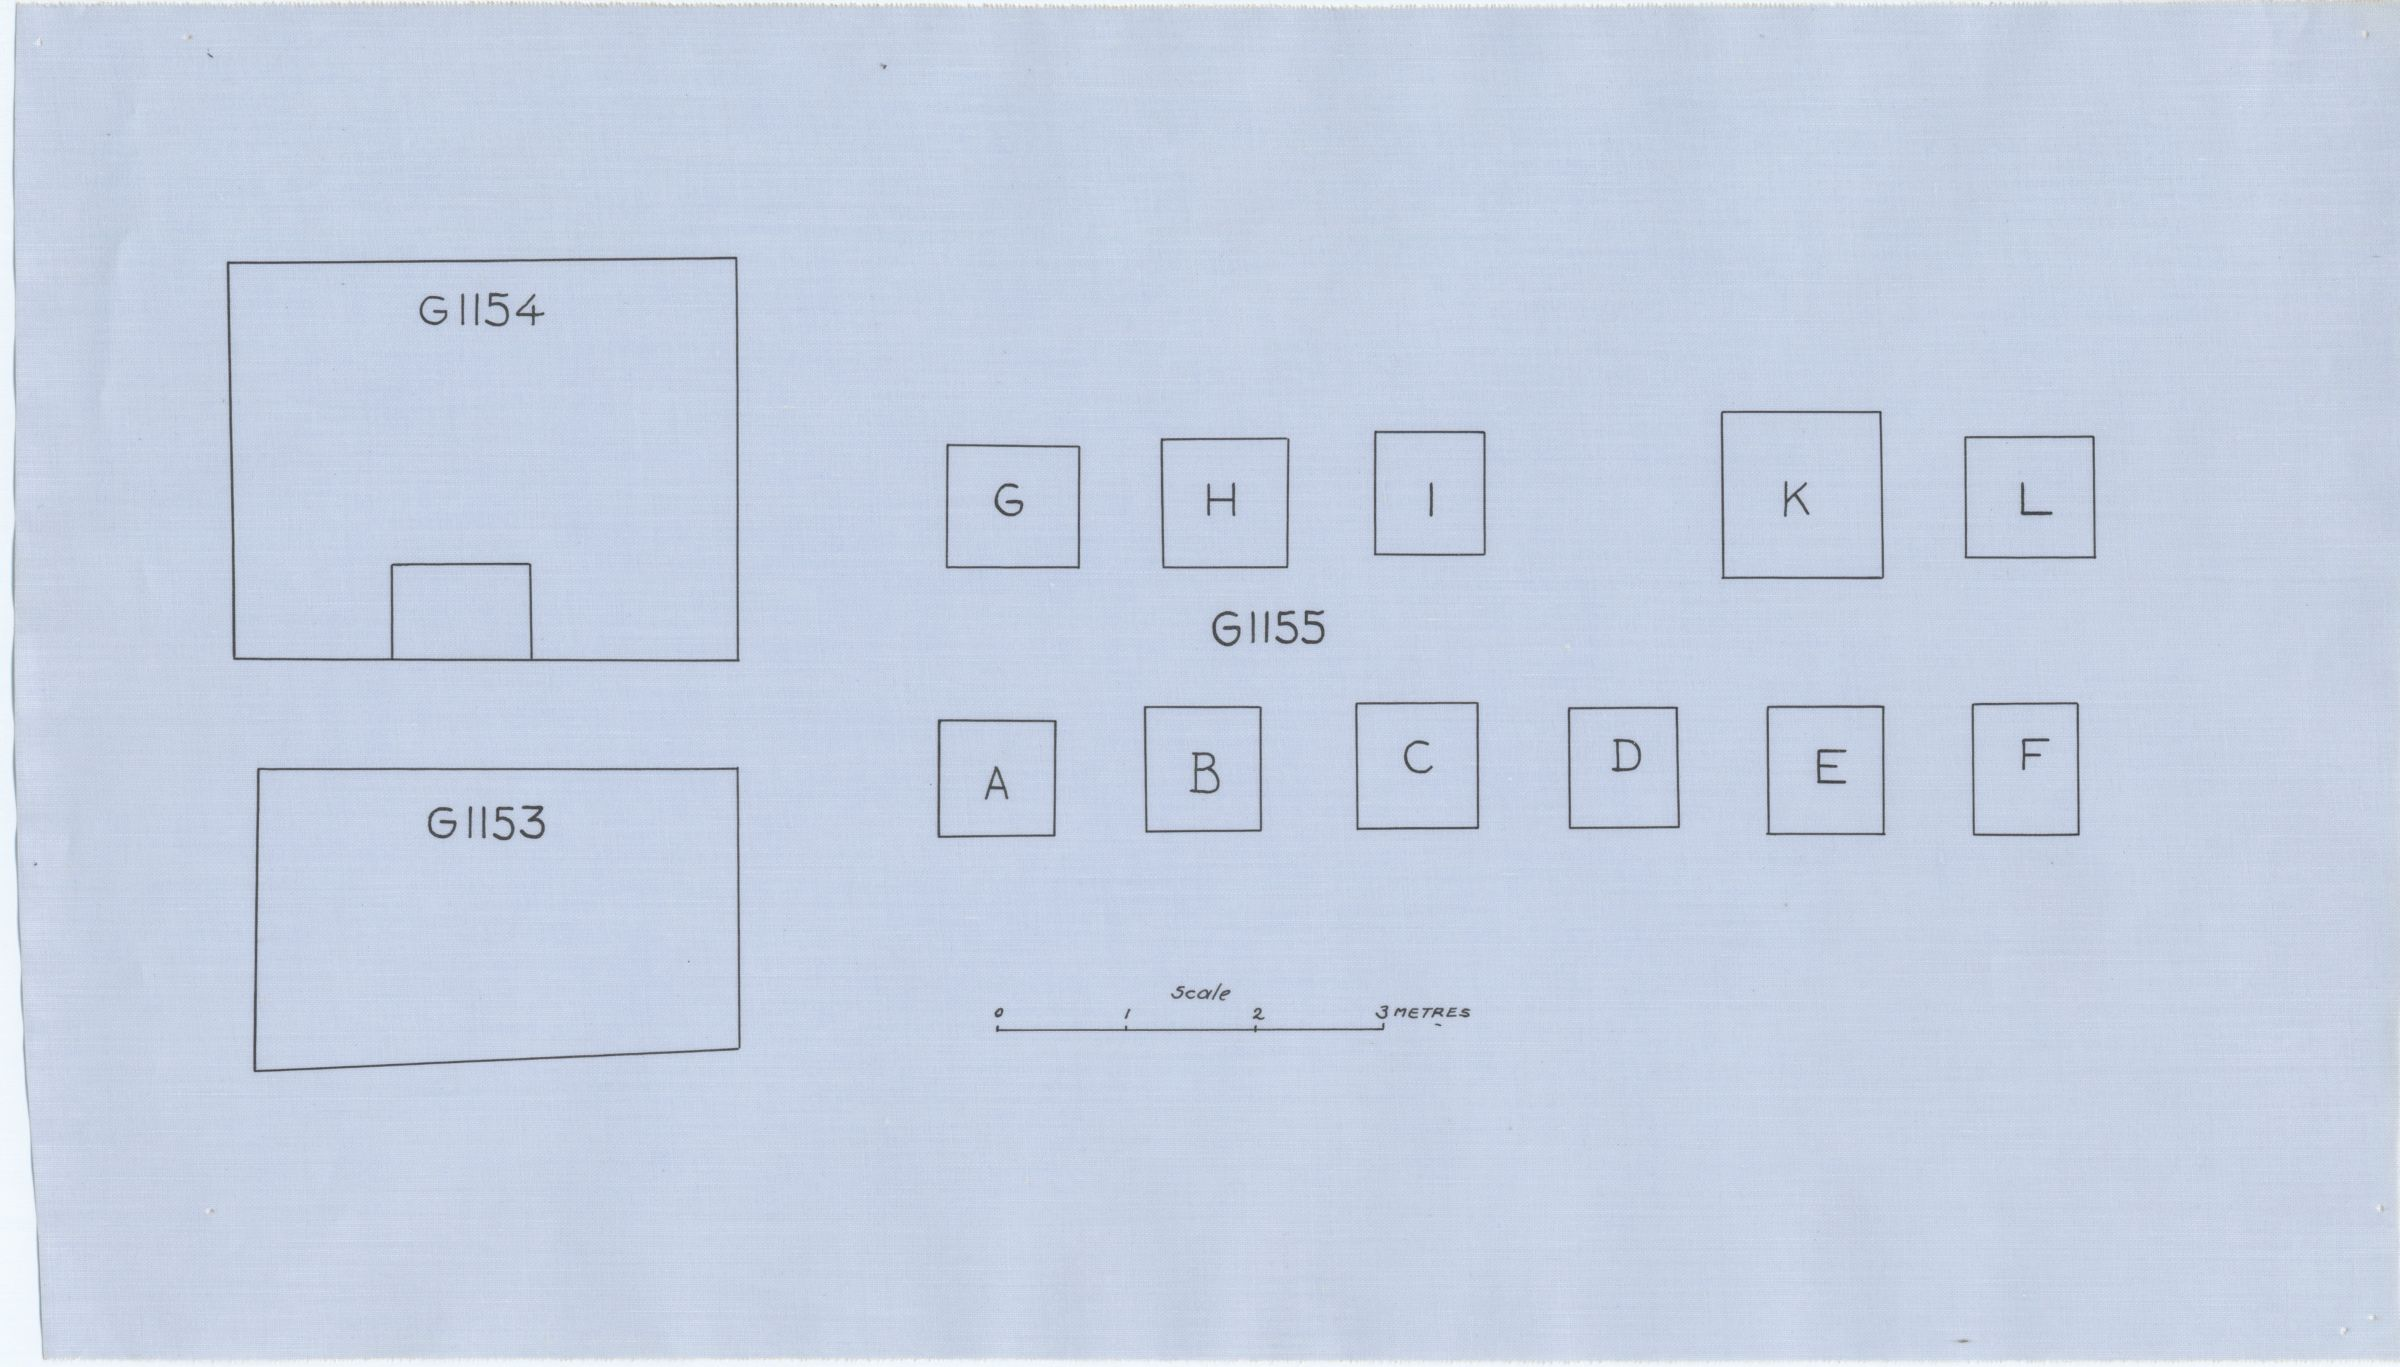 Maps and plans: Plan of G 1153, G 1154, G 1155